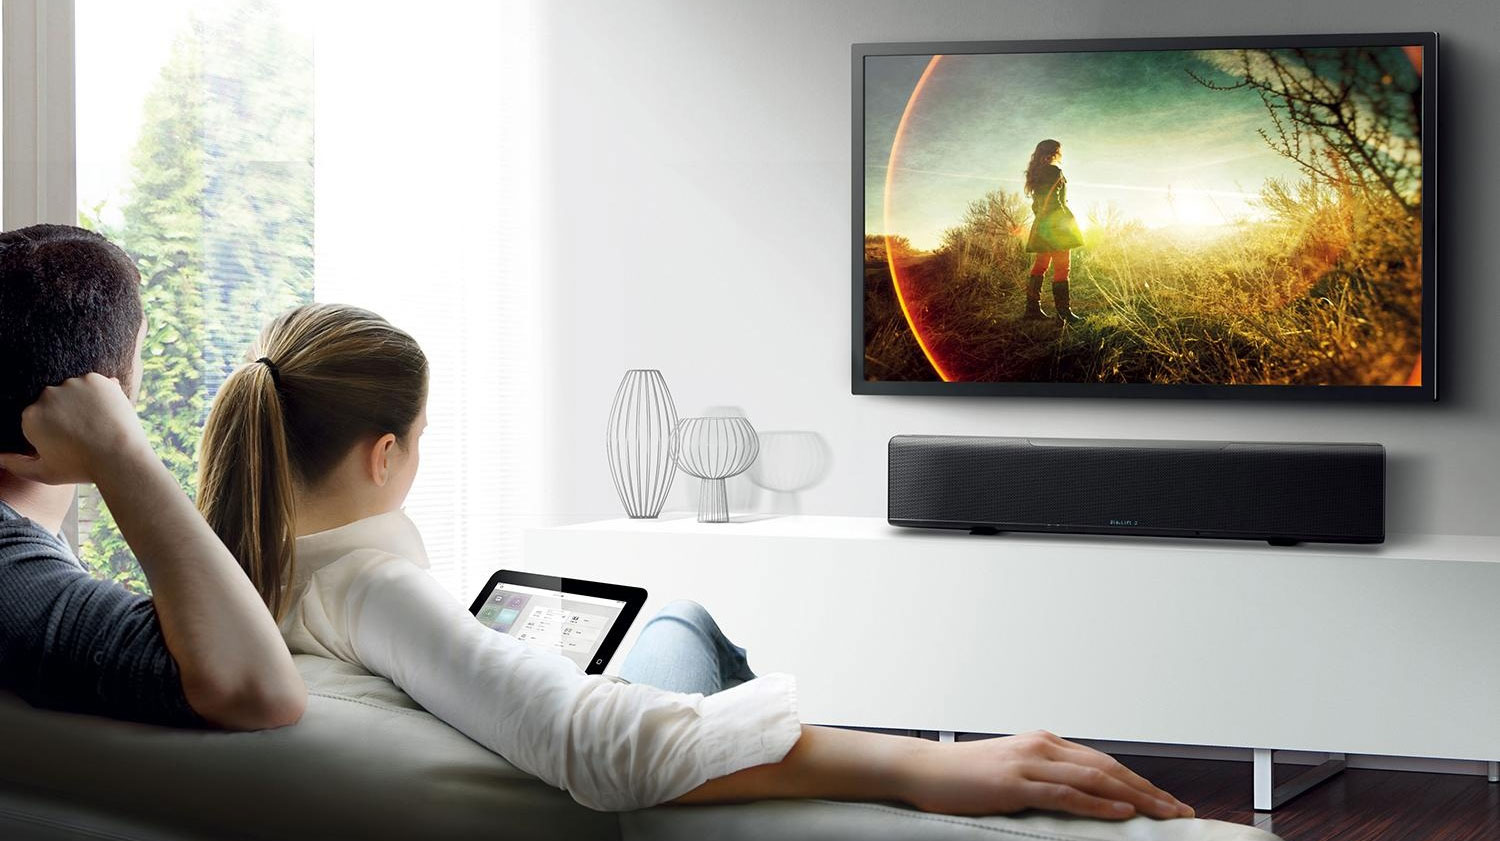 Yamaha launches first Dolby Atmos soundbar, YSP-5600 - FlatpanelsHD